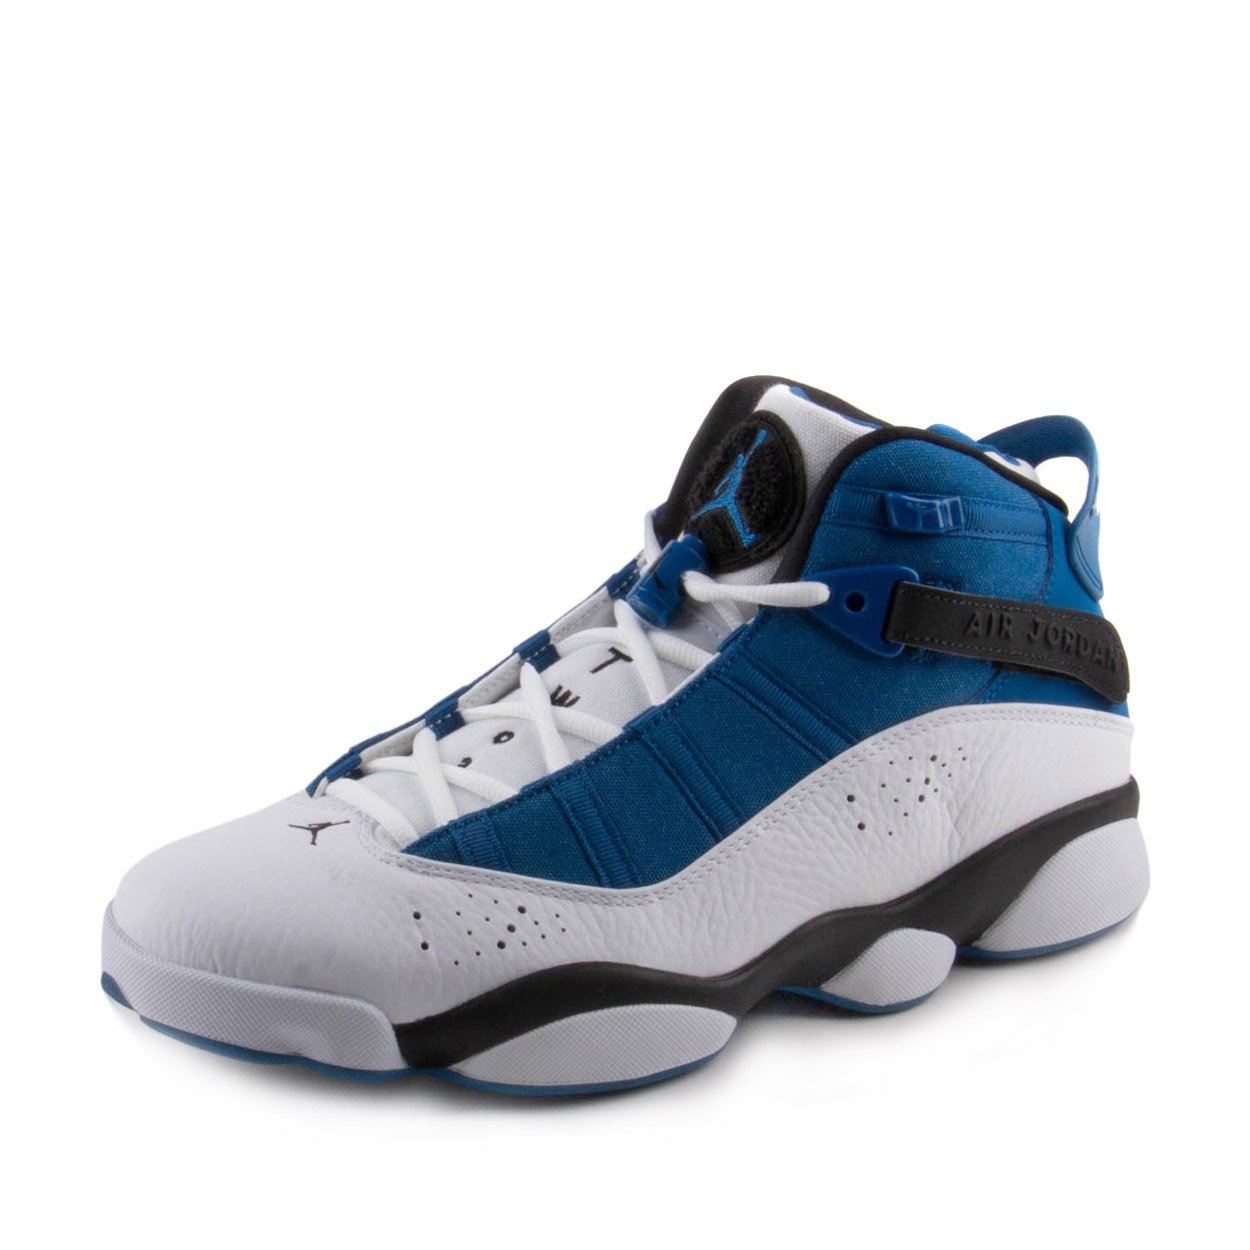 Jordan 6 RINGS MENS fashion-sneakers 322992-400_11.5 - TEAM ROYAL/BLACK-WHITE-METALLIC SILVER by Jordan